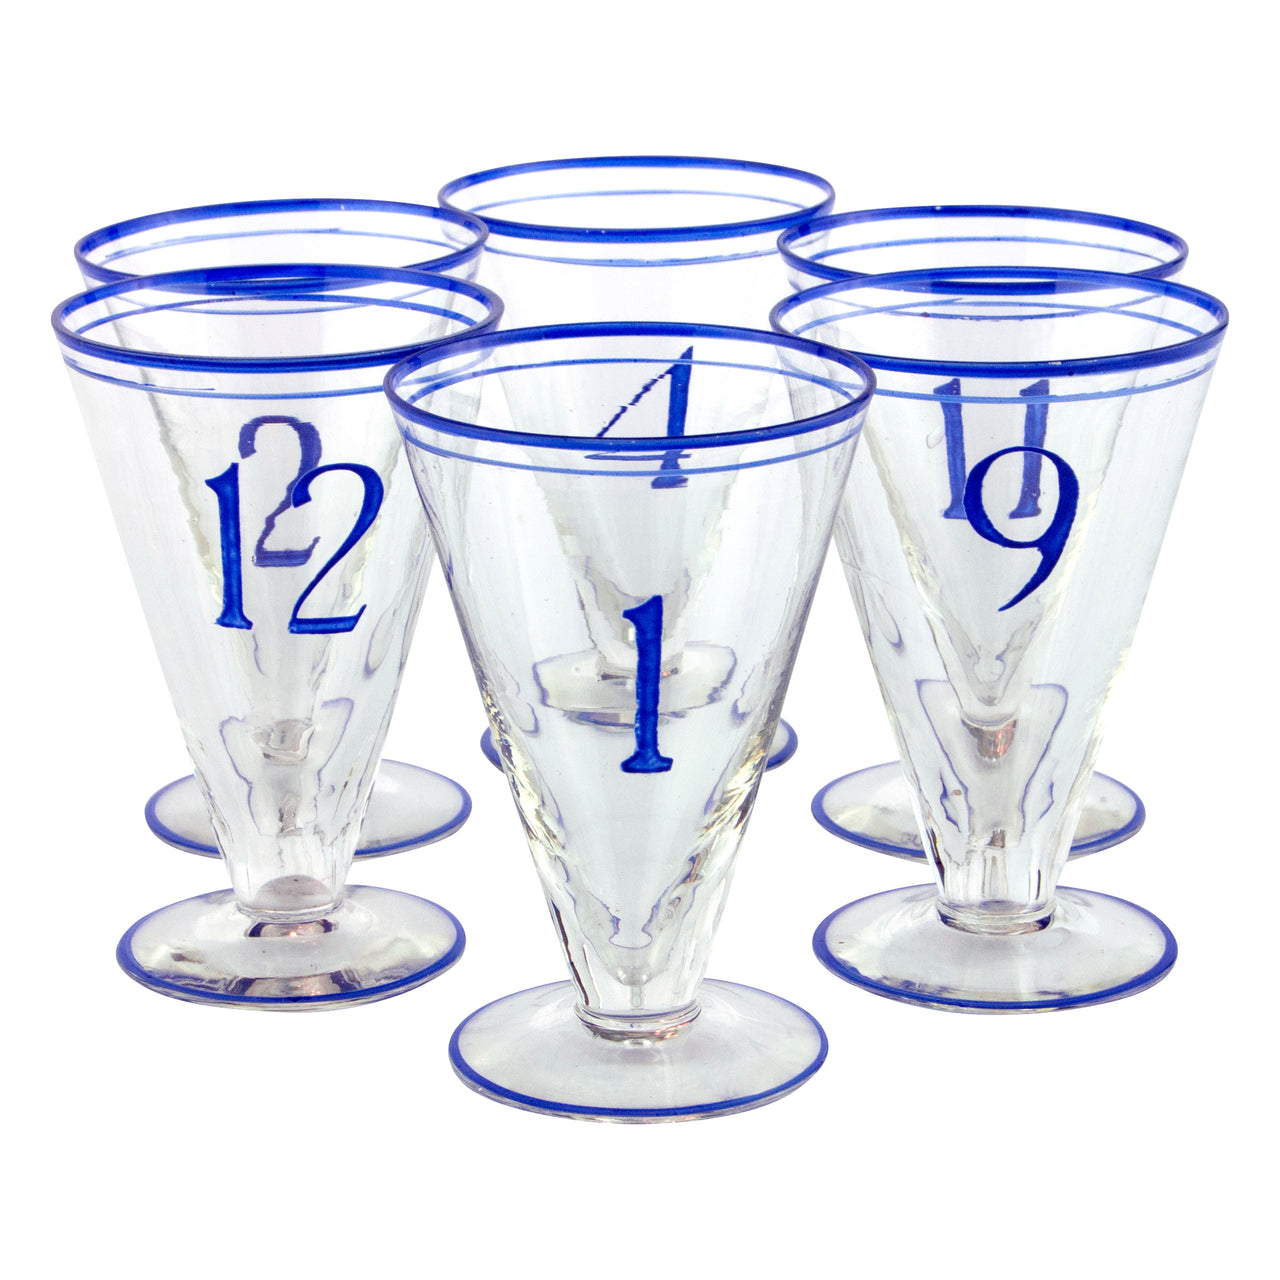 Vintage Blue Art Deco Numbered Cocktail Glasses | The Hour